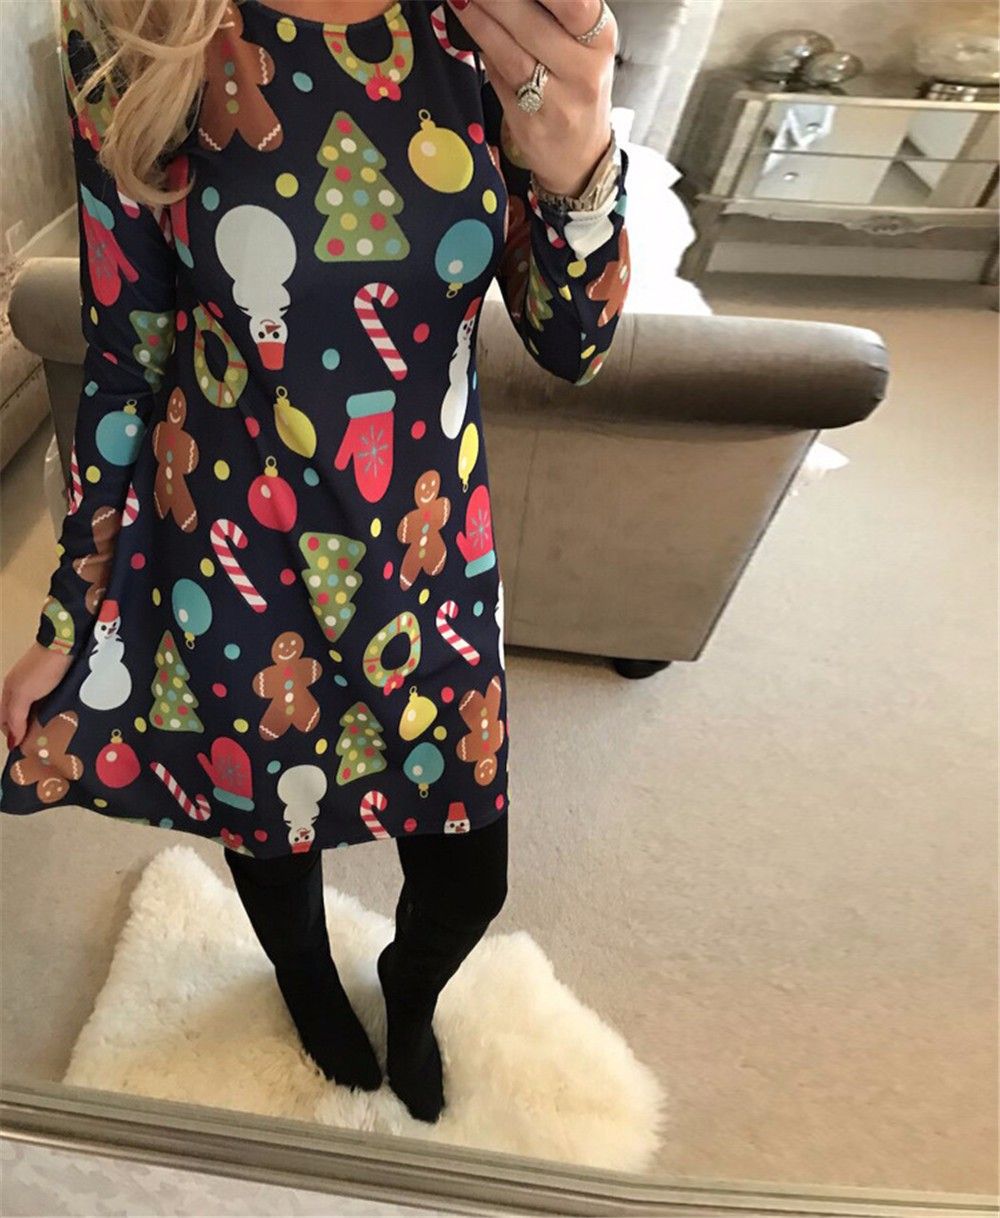 4XL 5XL Big Size Casual Print Cartoon Christmas Tree Cute Loose Dress Autumn Winter A-Line Dresses 18 Plus Size Women Clothing 5